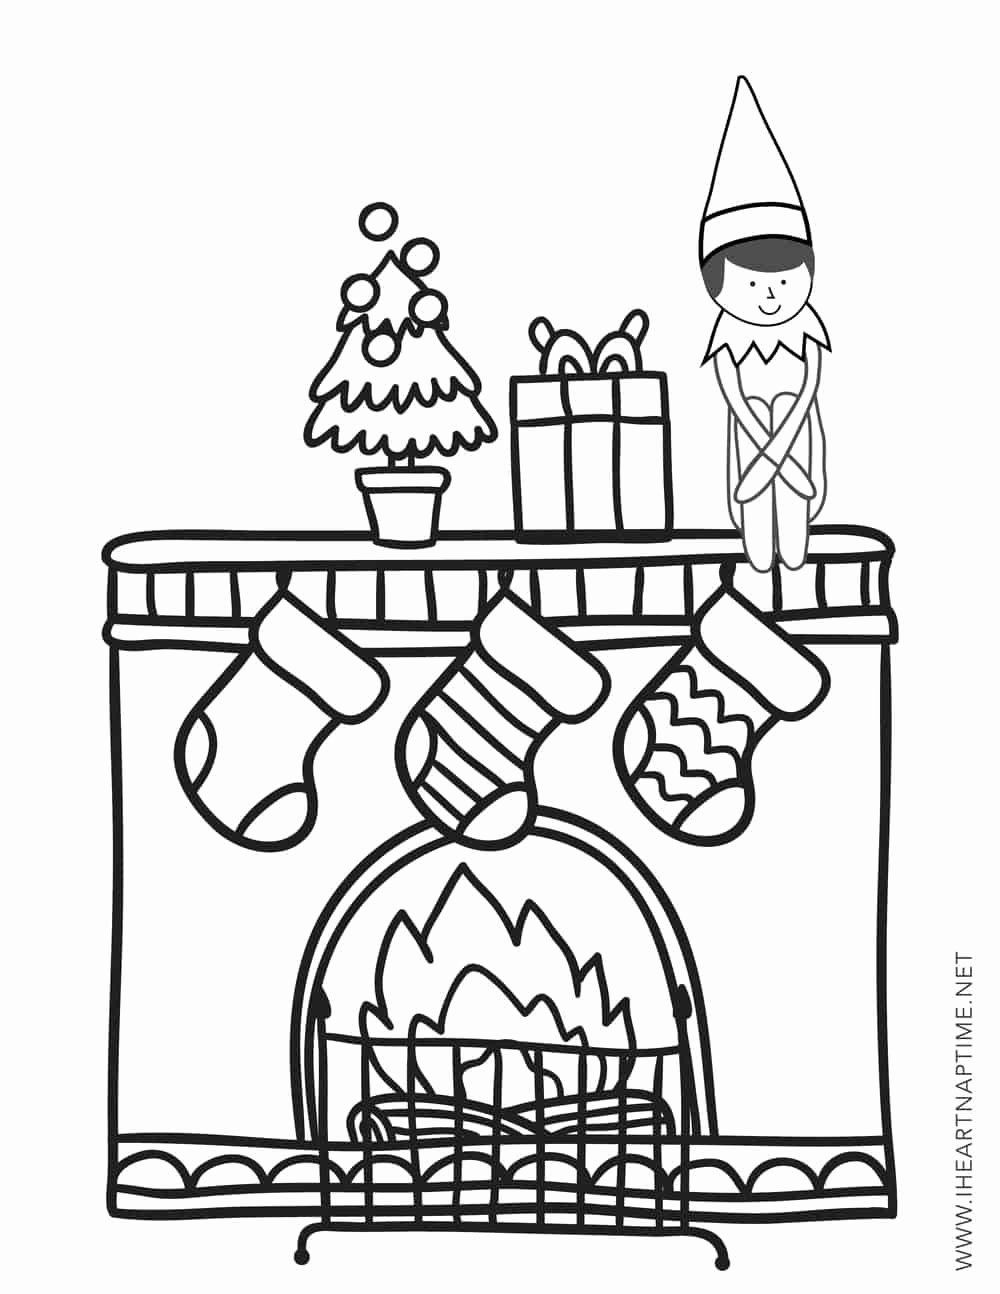 Elf On The Shelf Coloring Luxury Free Elf On The Shelf Coloring Pages I Heart Naptime In 2020 Free Christmas Coloring Pages Coloring Pages Christmas Coloring Pages